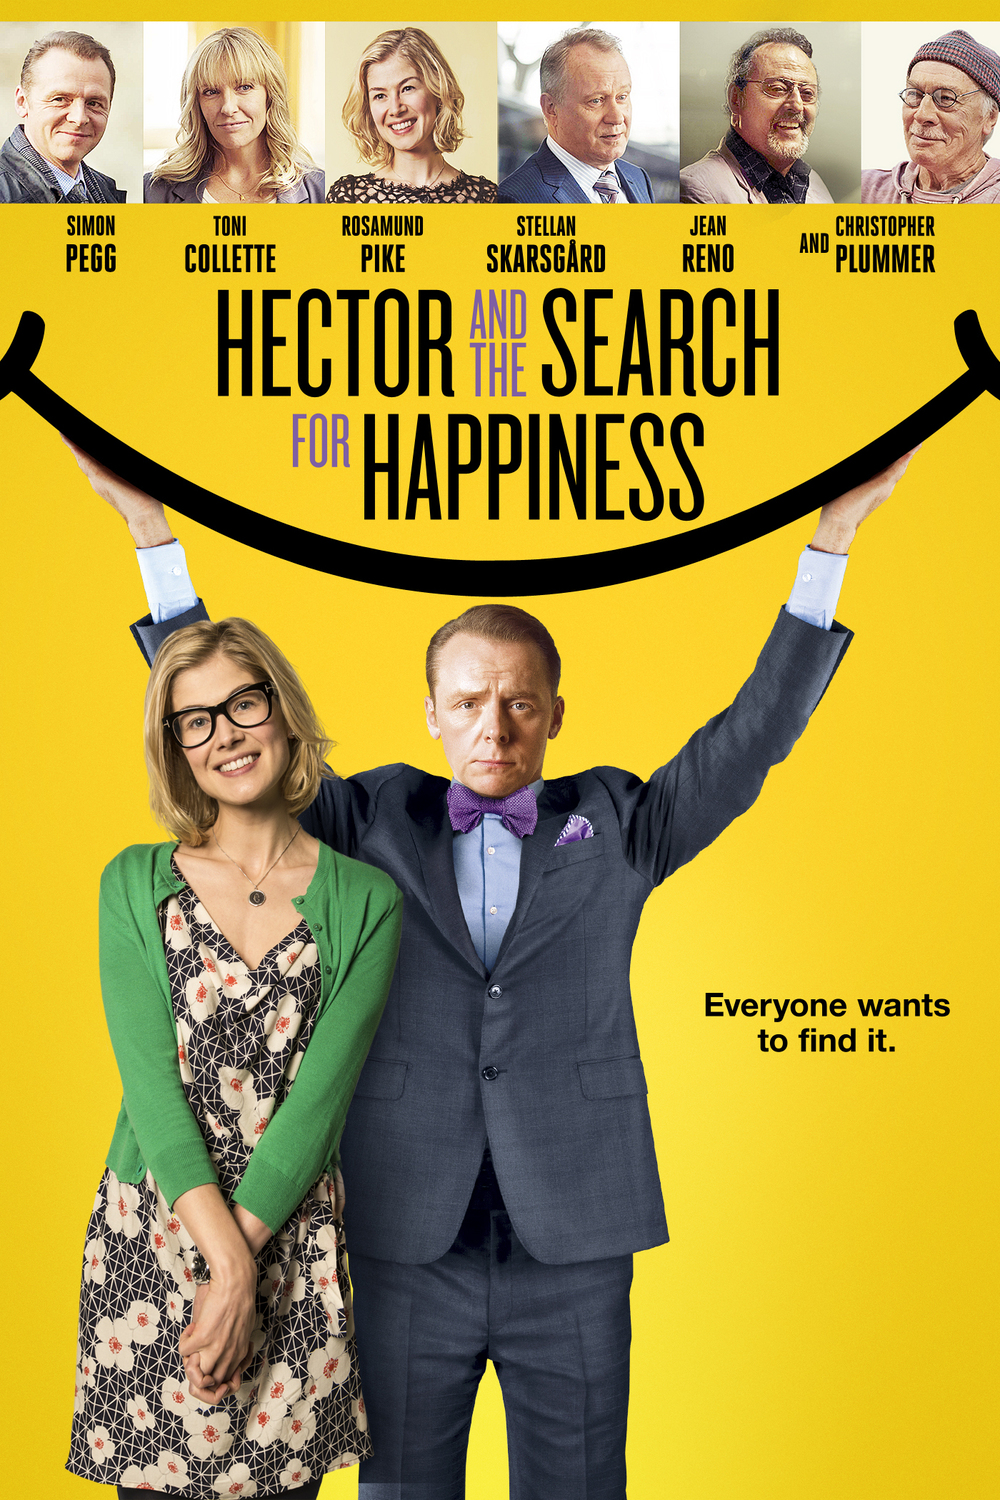 the search for happiness Hector and the search for happiness hector (simon pegg) is a quirky, yet irresistible london psychiatrist who has become increasingly tired of his humdrum life.